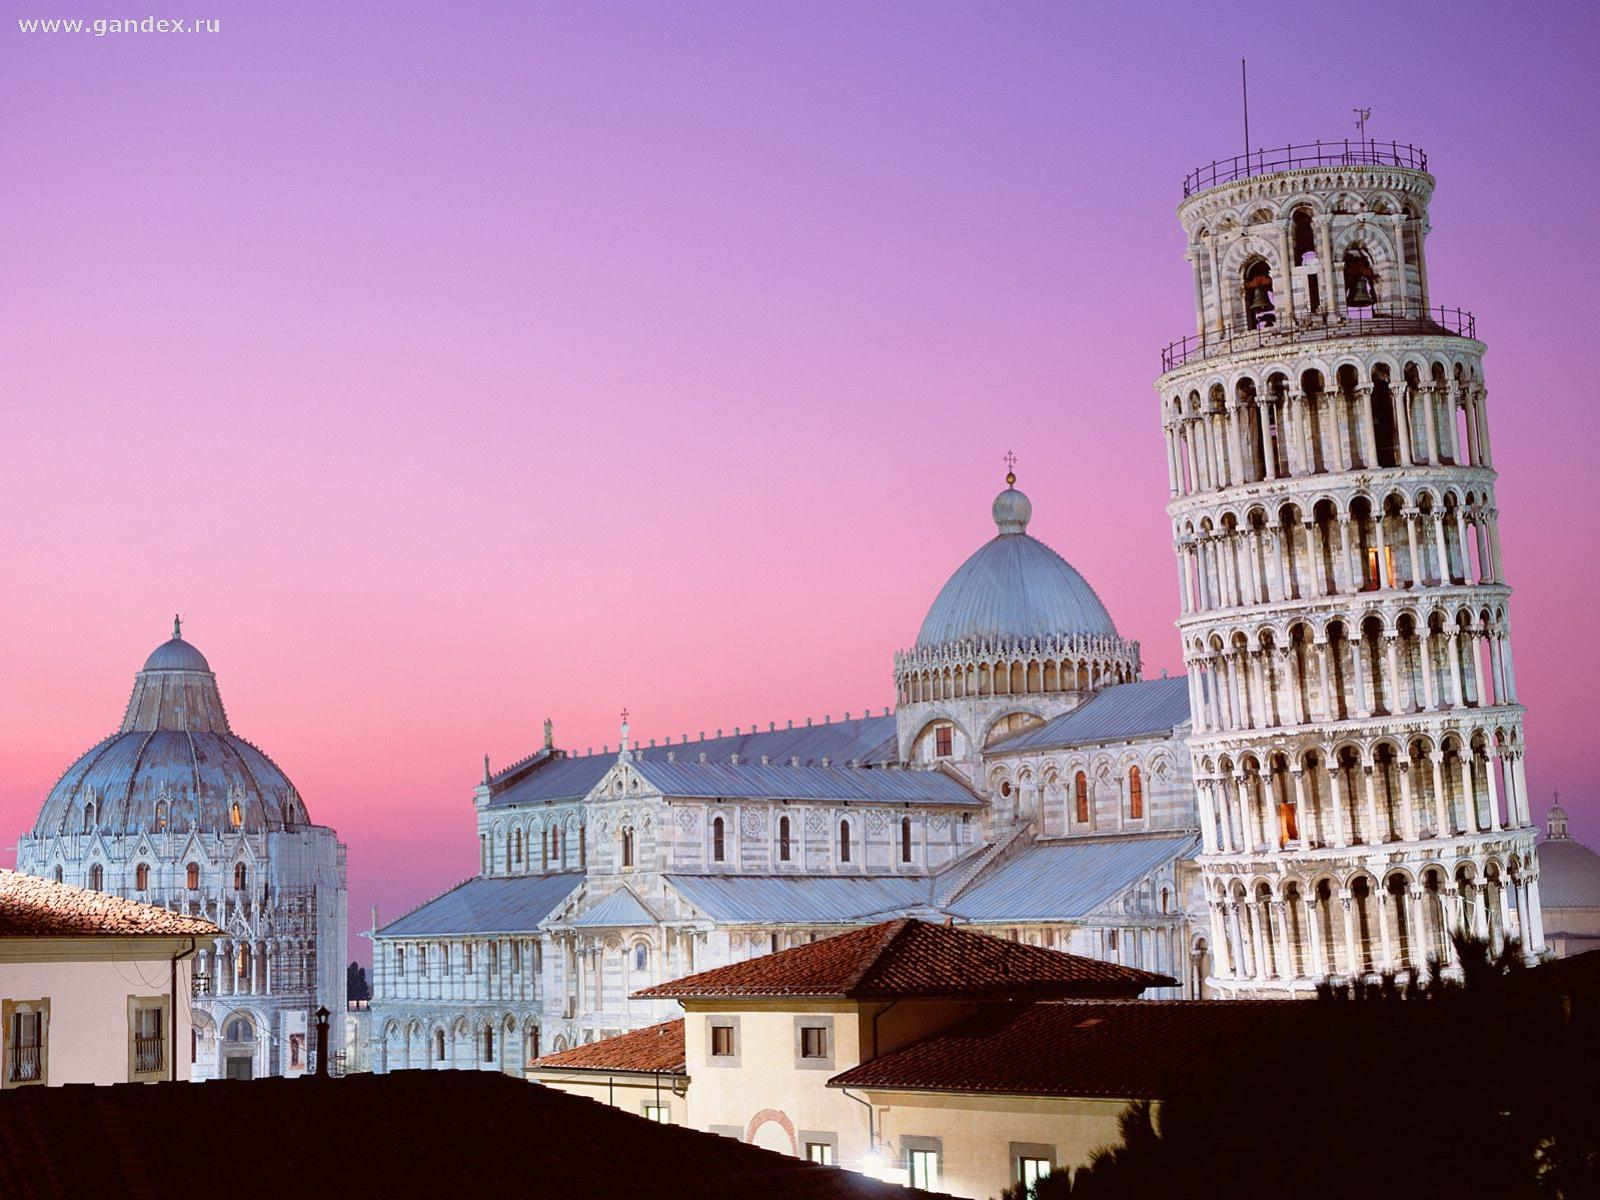 Leaning Tower of Pisa in Italy wallpaper